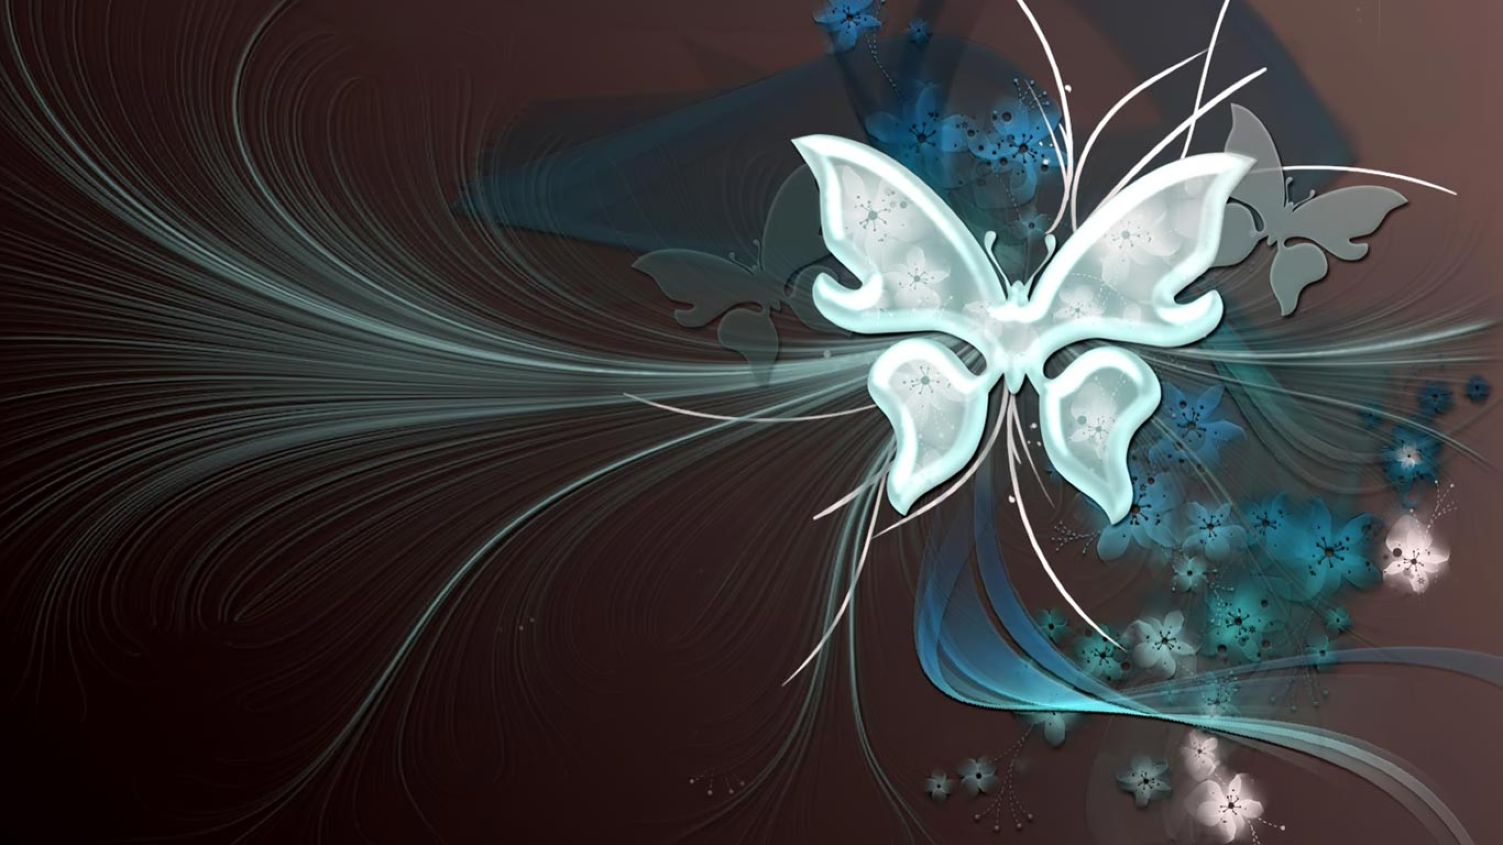 3d Butterfly Hd For Laptop 1366x768 Wallpaper Desktop Hd Wallpaper